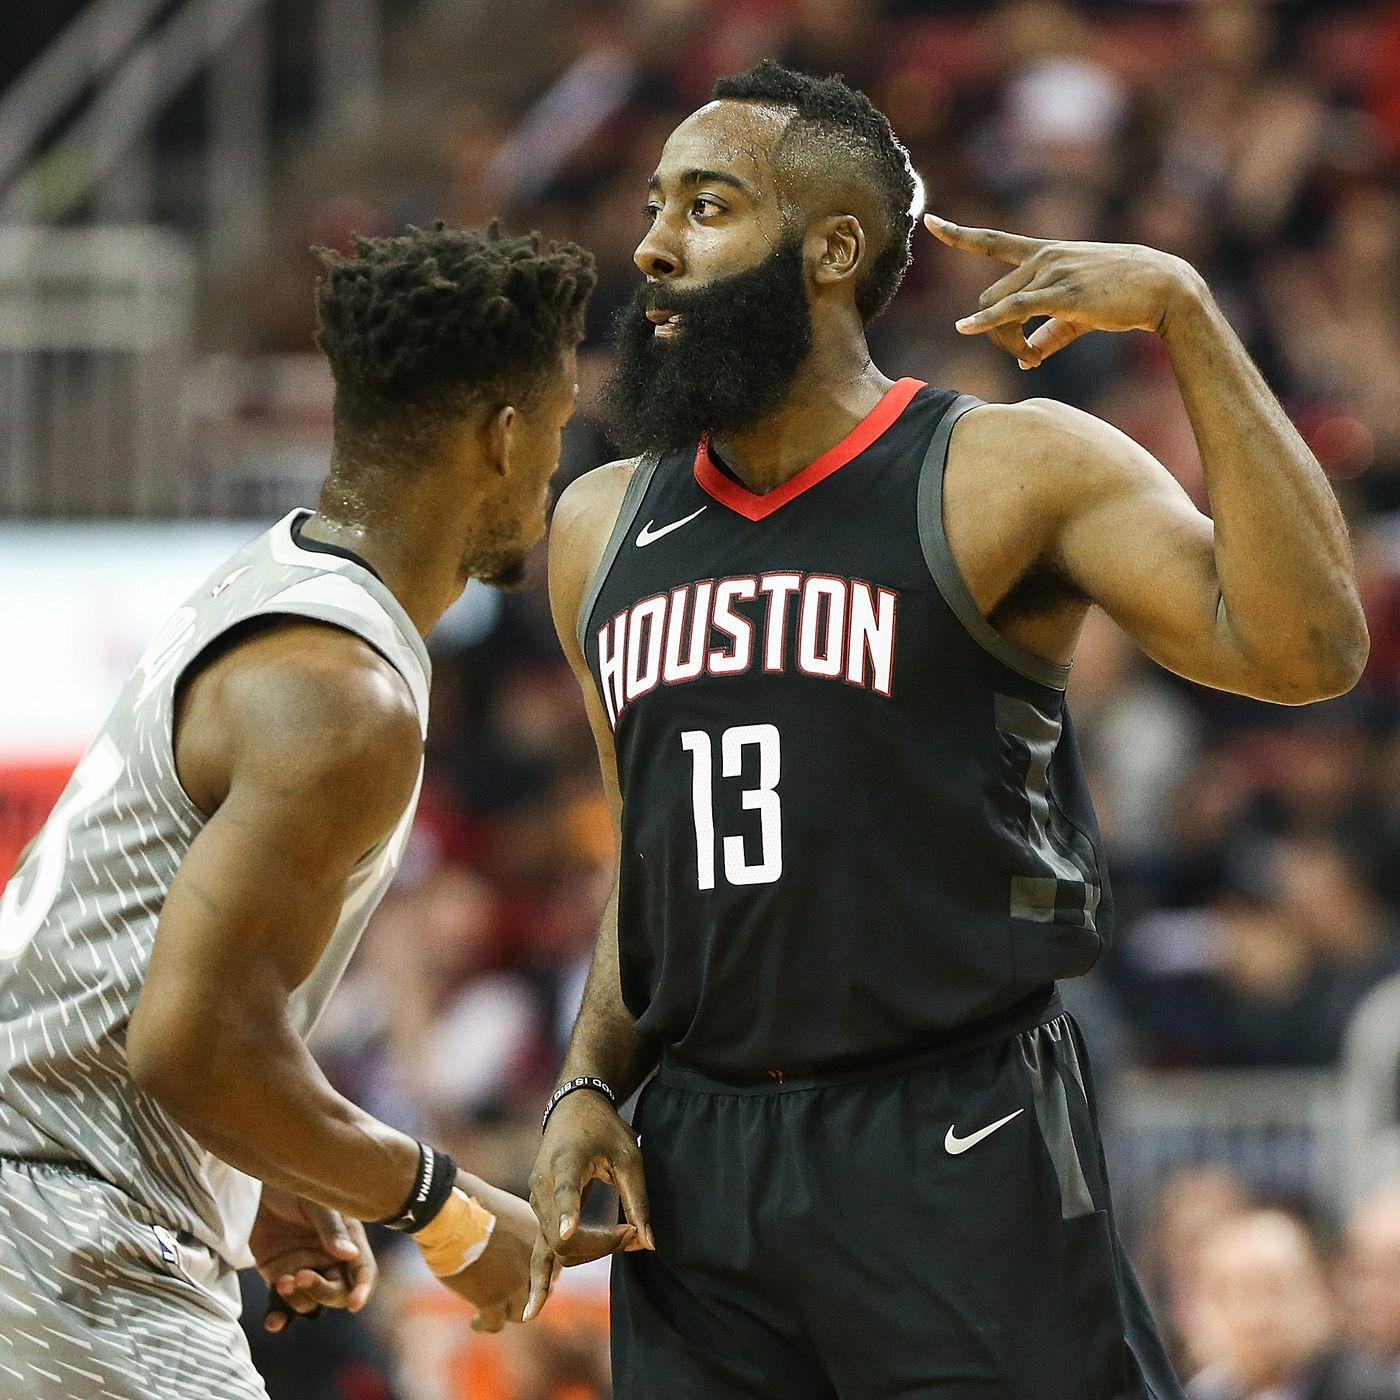 5158555fcad7 Timberwolves vs. Rockets 2018 results  James Harden scores 44 points in  narrow Houston win